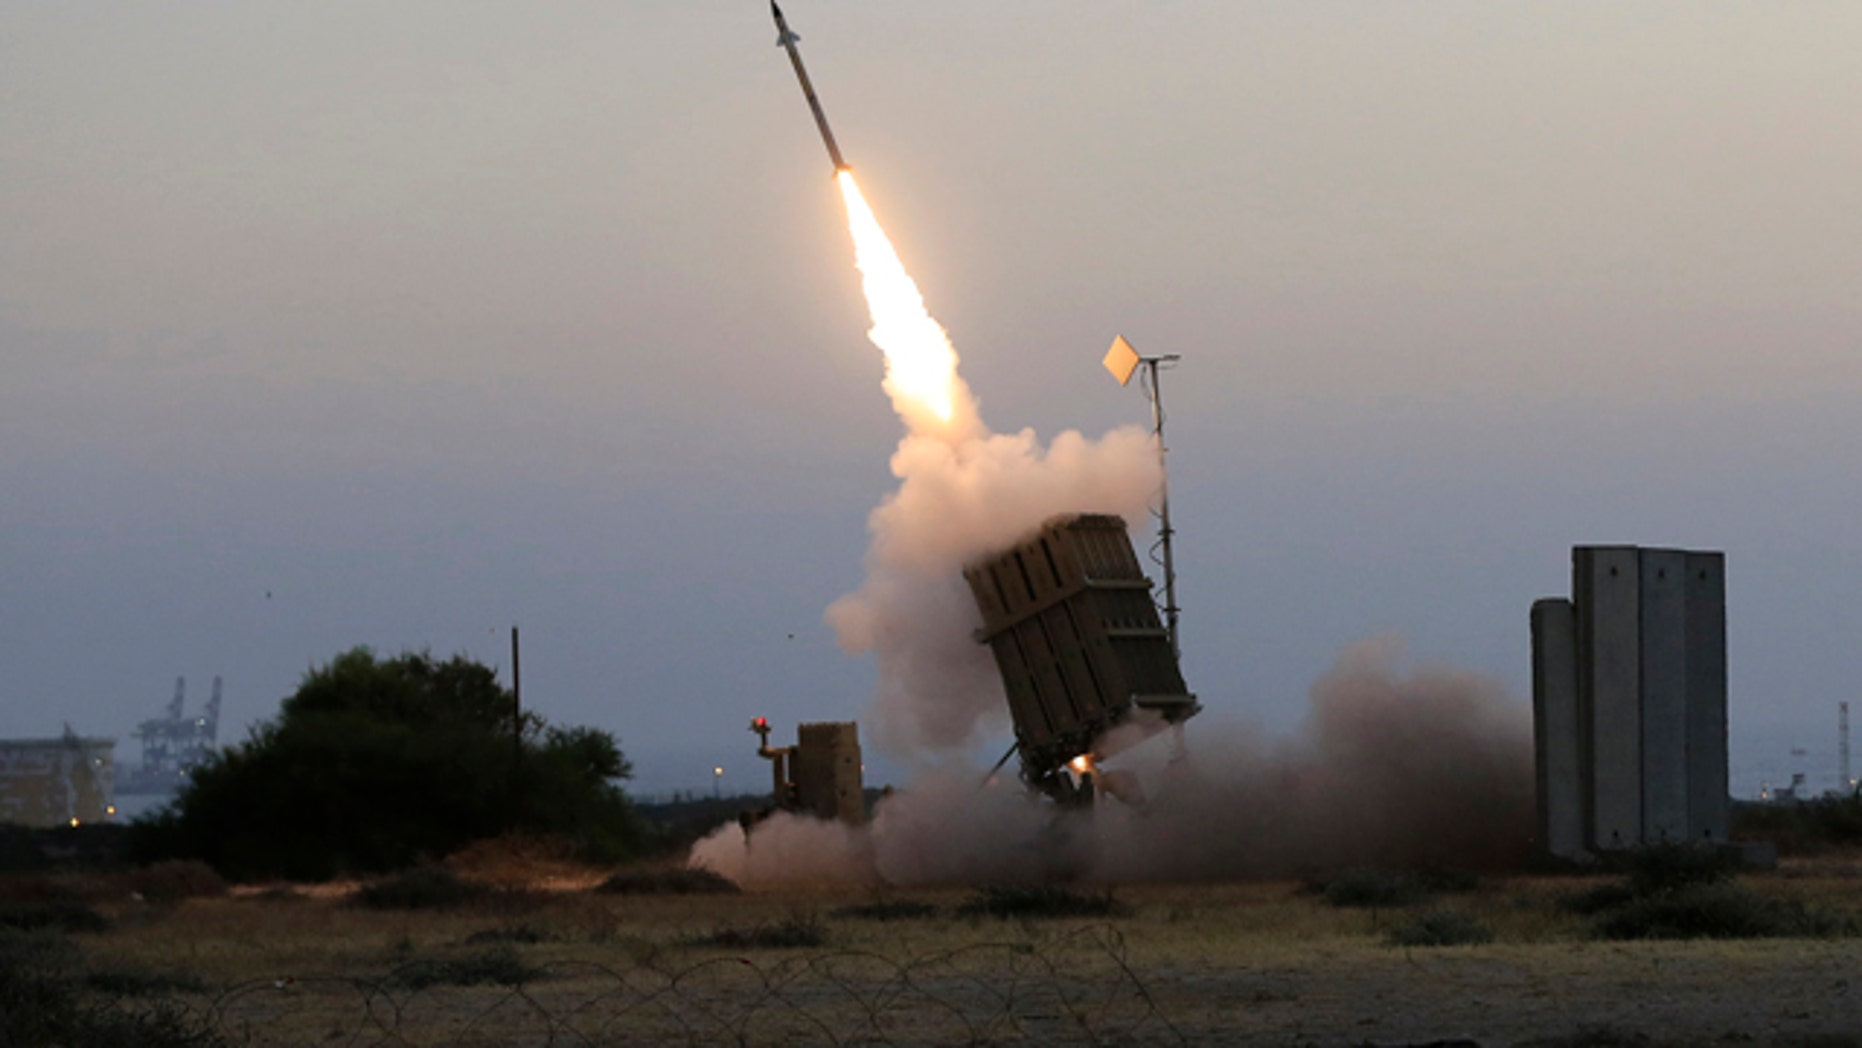 July 5, 2014: An Iron Dome air defense system fires to intercept a rocket from Gaza Strip in the costal city of Ashkelon, Israel. (AP Photo/Tsafrir Abayov)